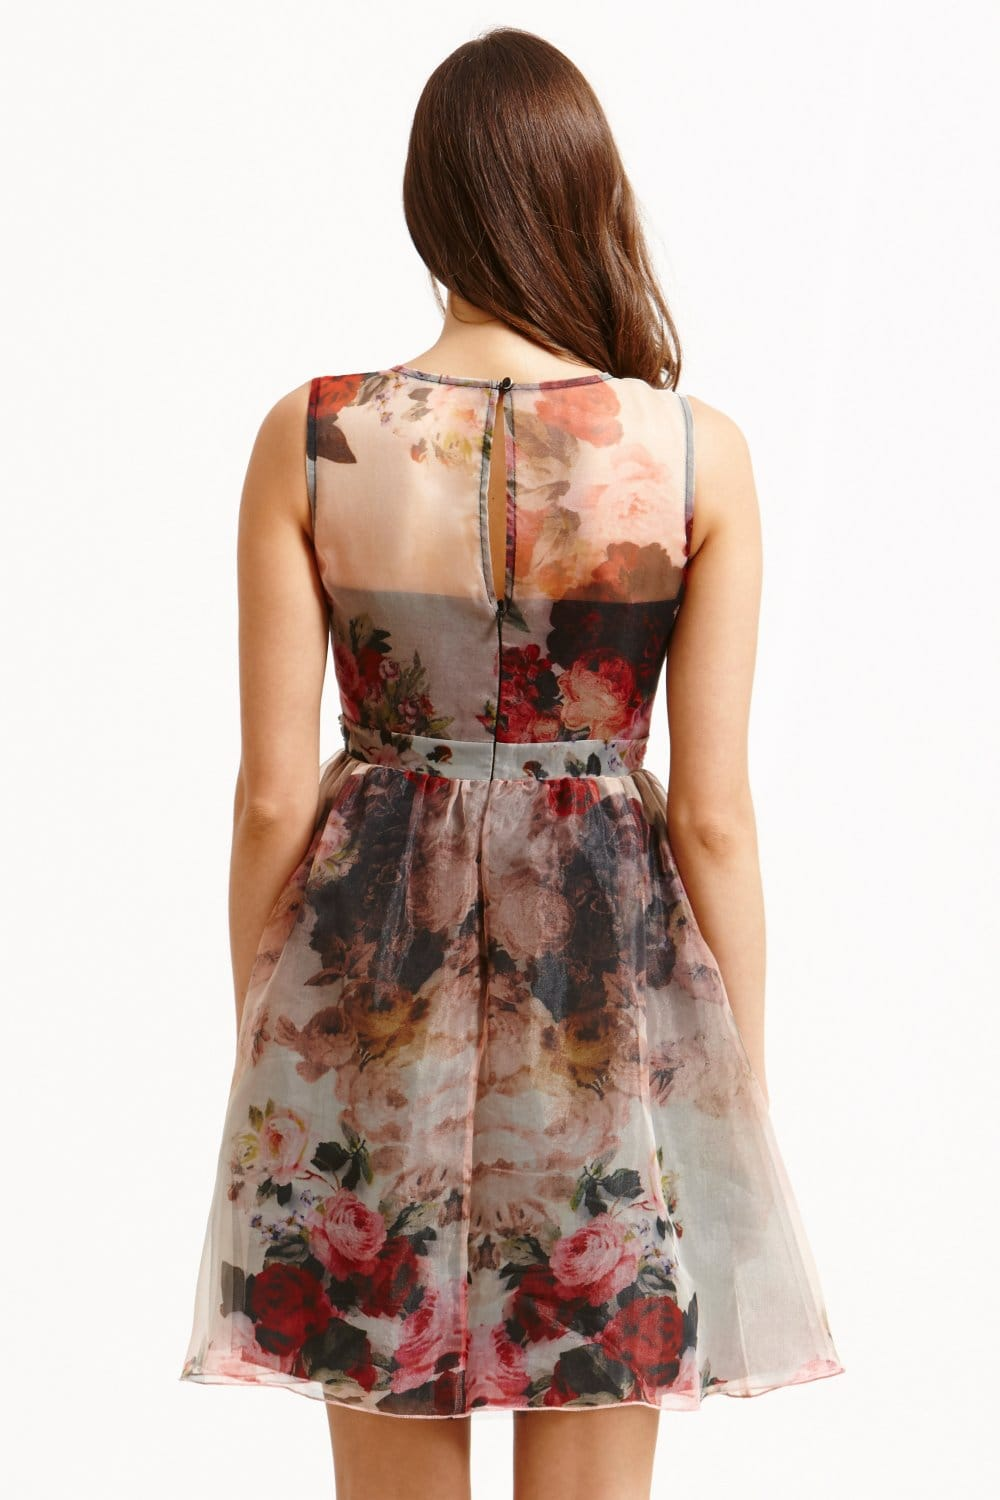 Floral Organza Fit And Flare Dress From Little Mistress Uk